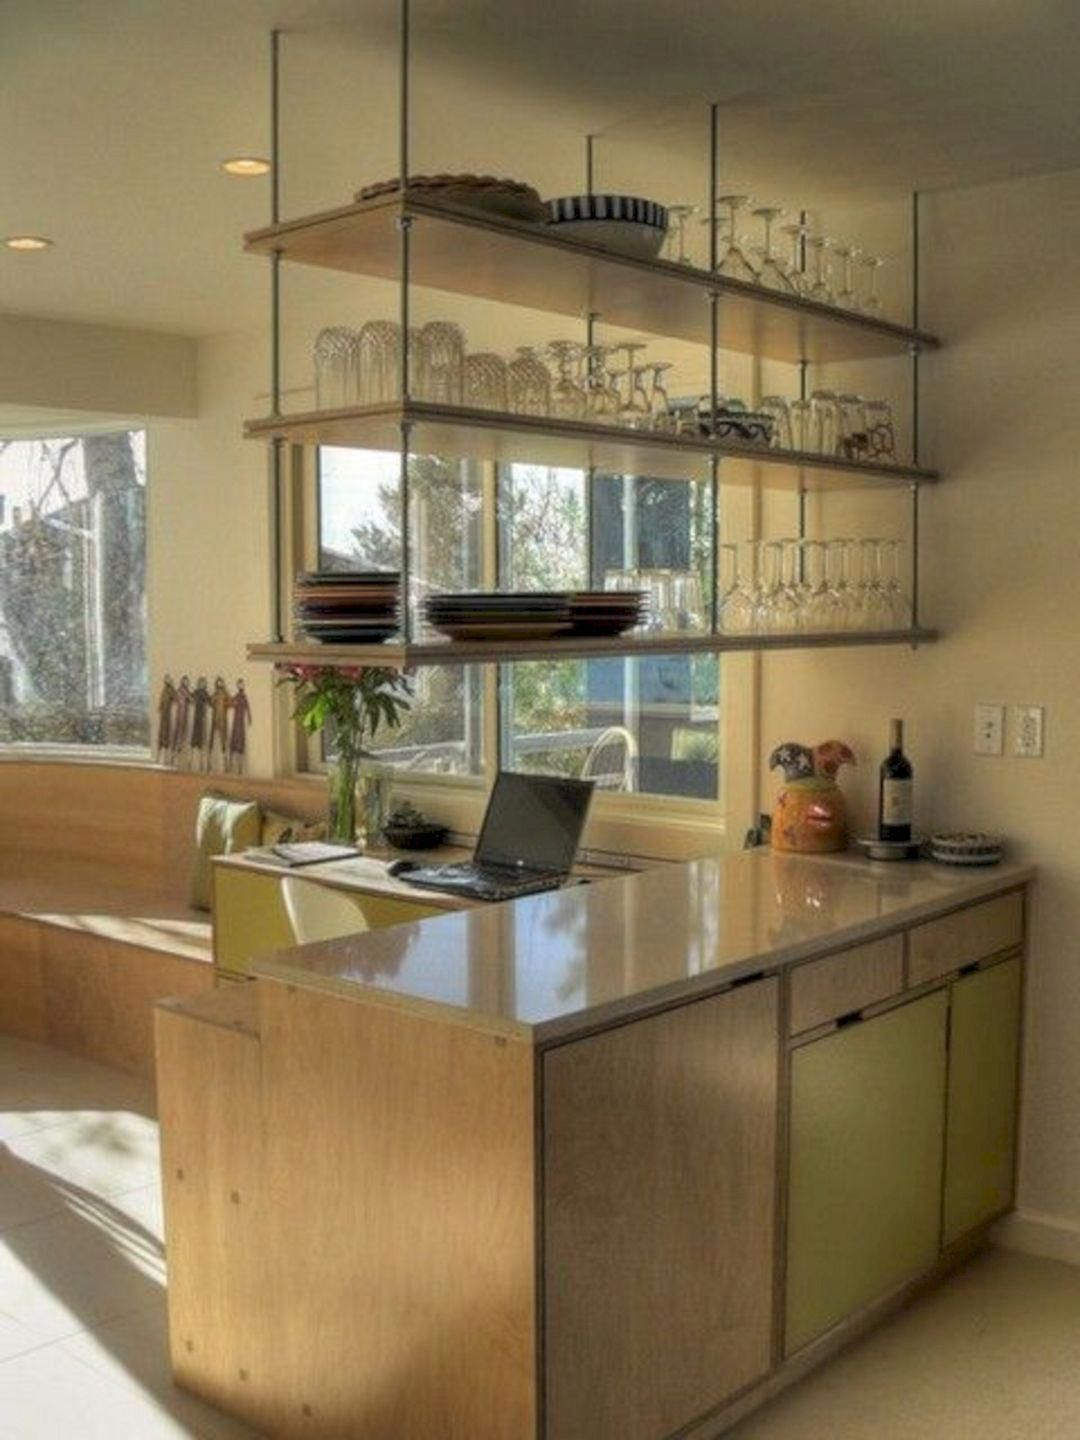 Laminates The Surface Frequently Described By The Brand Name Formica Is Plastic Coated And Re Hanging Shelf Kitchen Hanging Kitchen Cabinets Hanging Cabinet